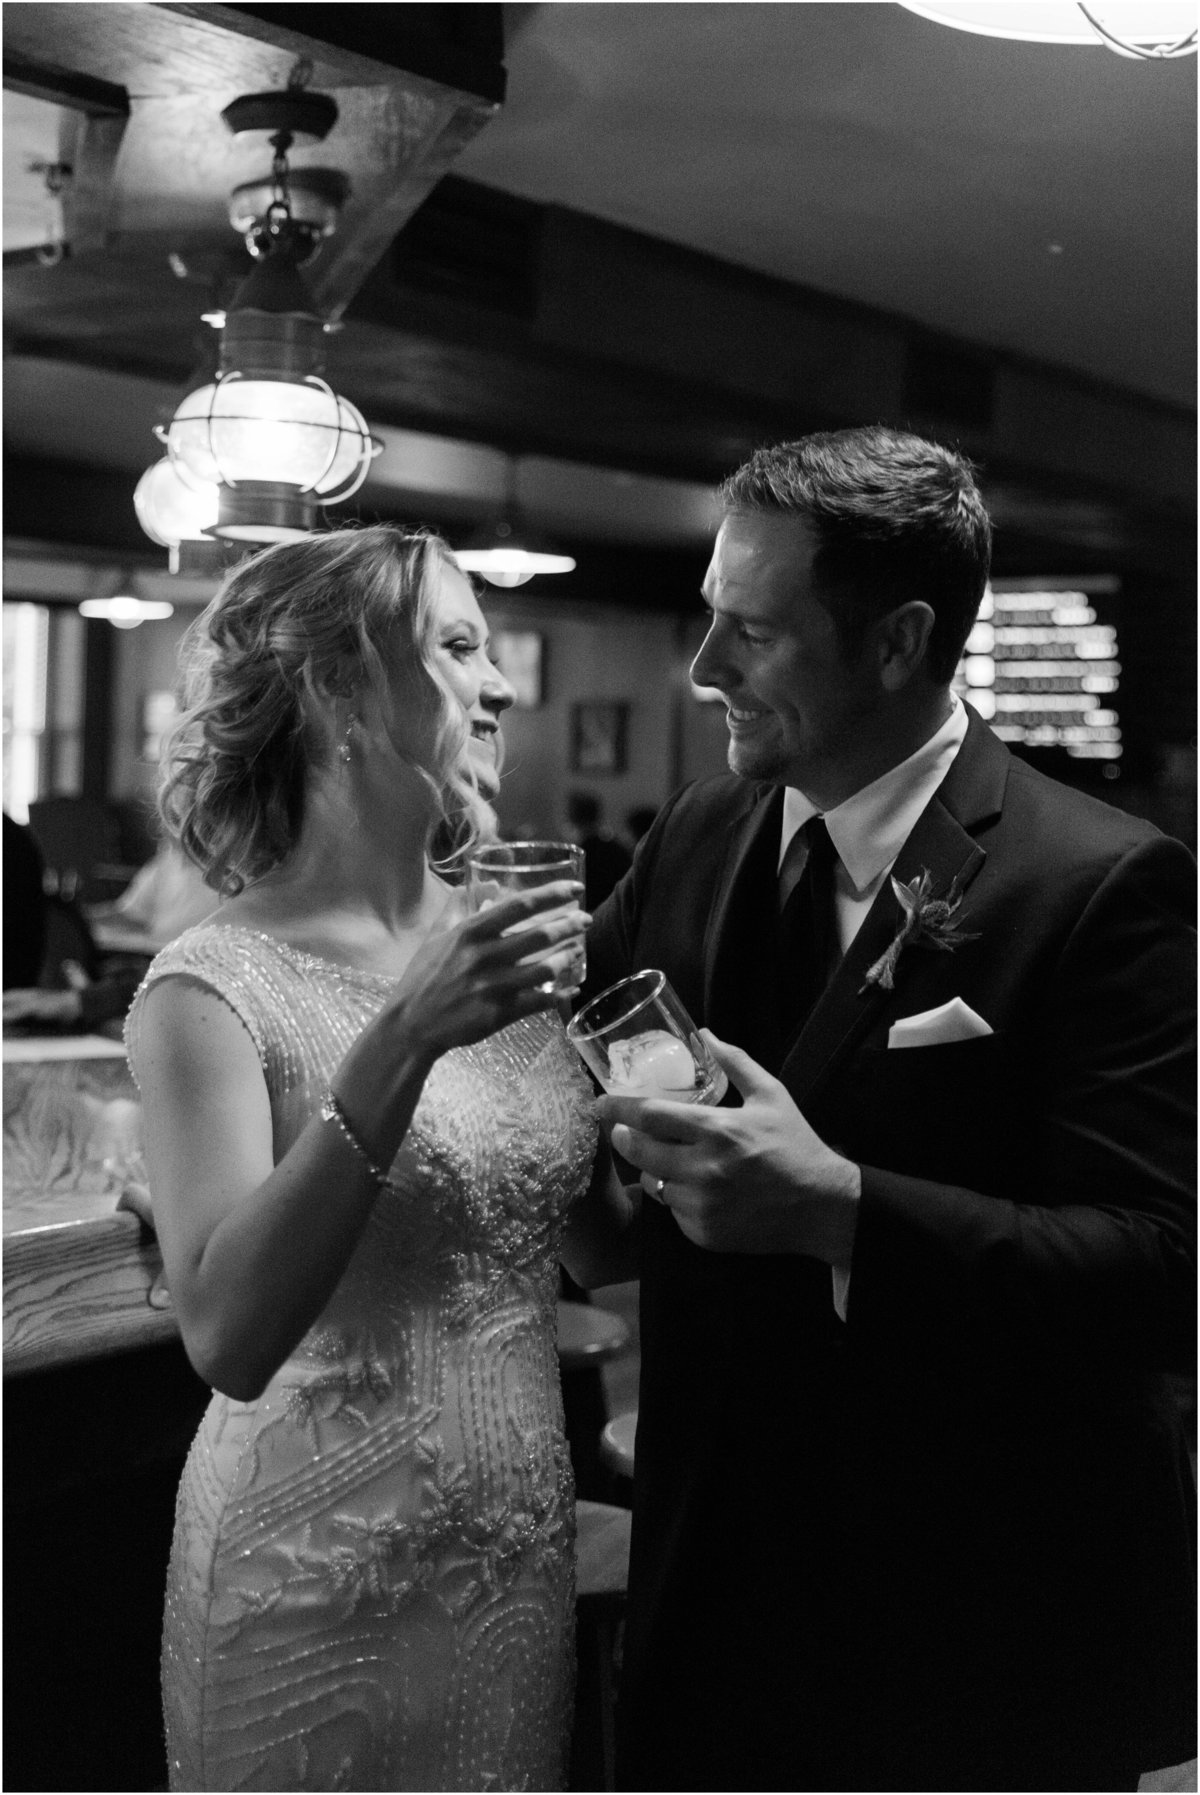 Bride and groom toasting by bar, black and white wedding photography